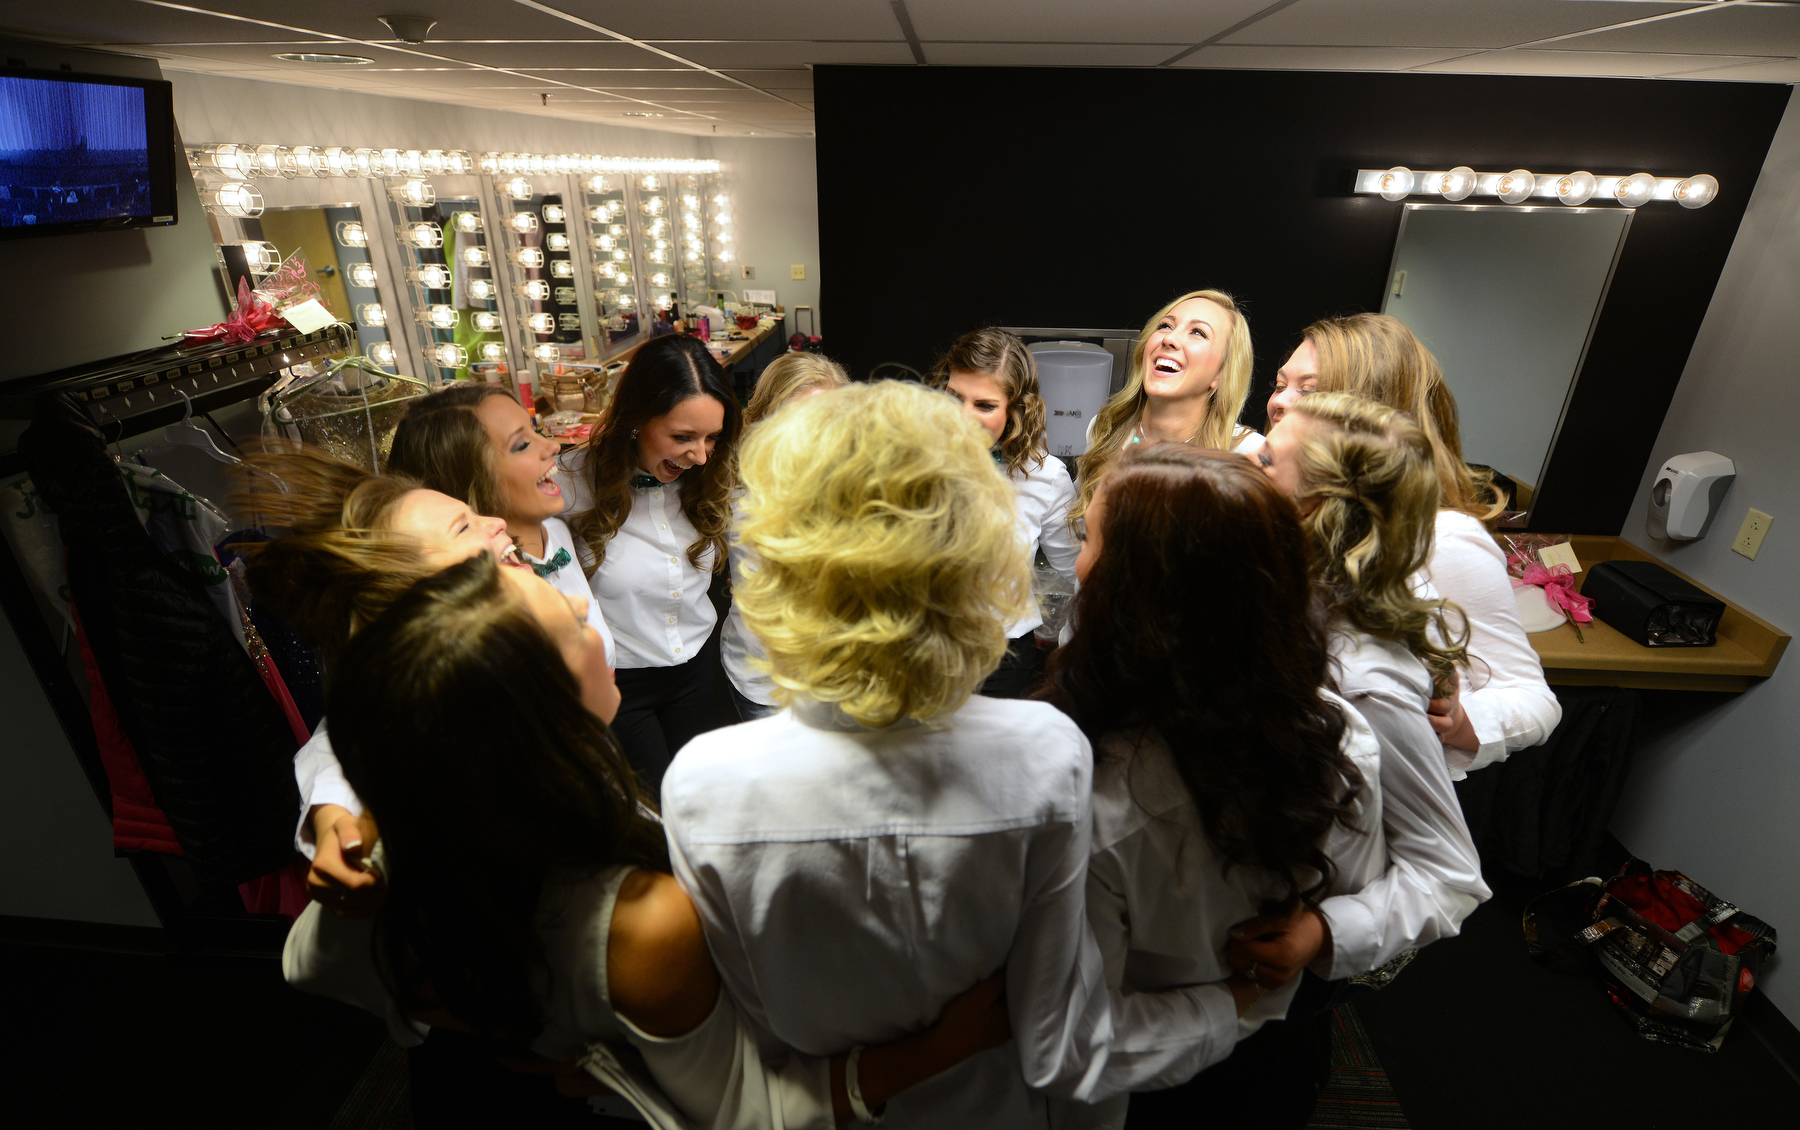 In the group huddle minutes before the show.